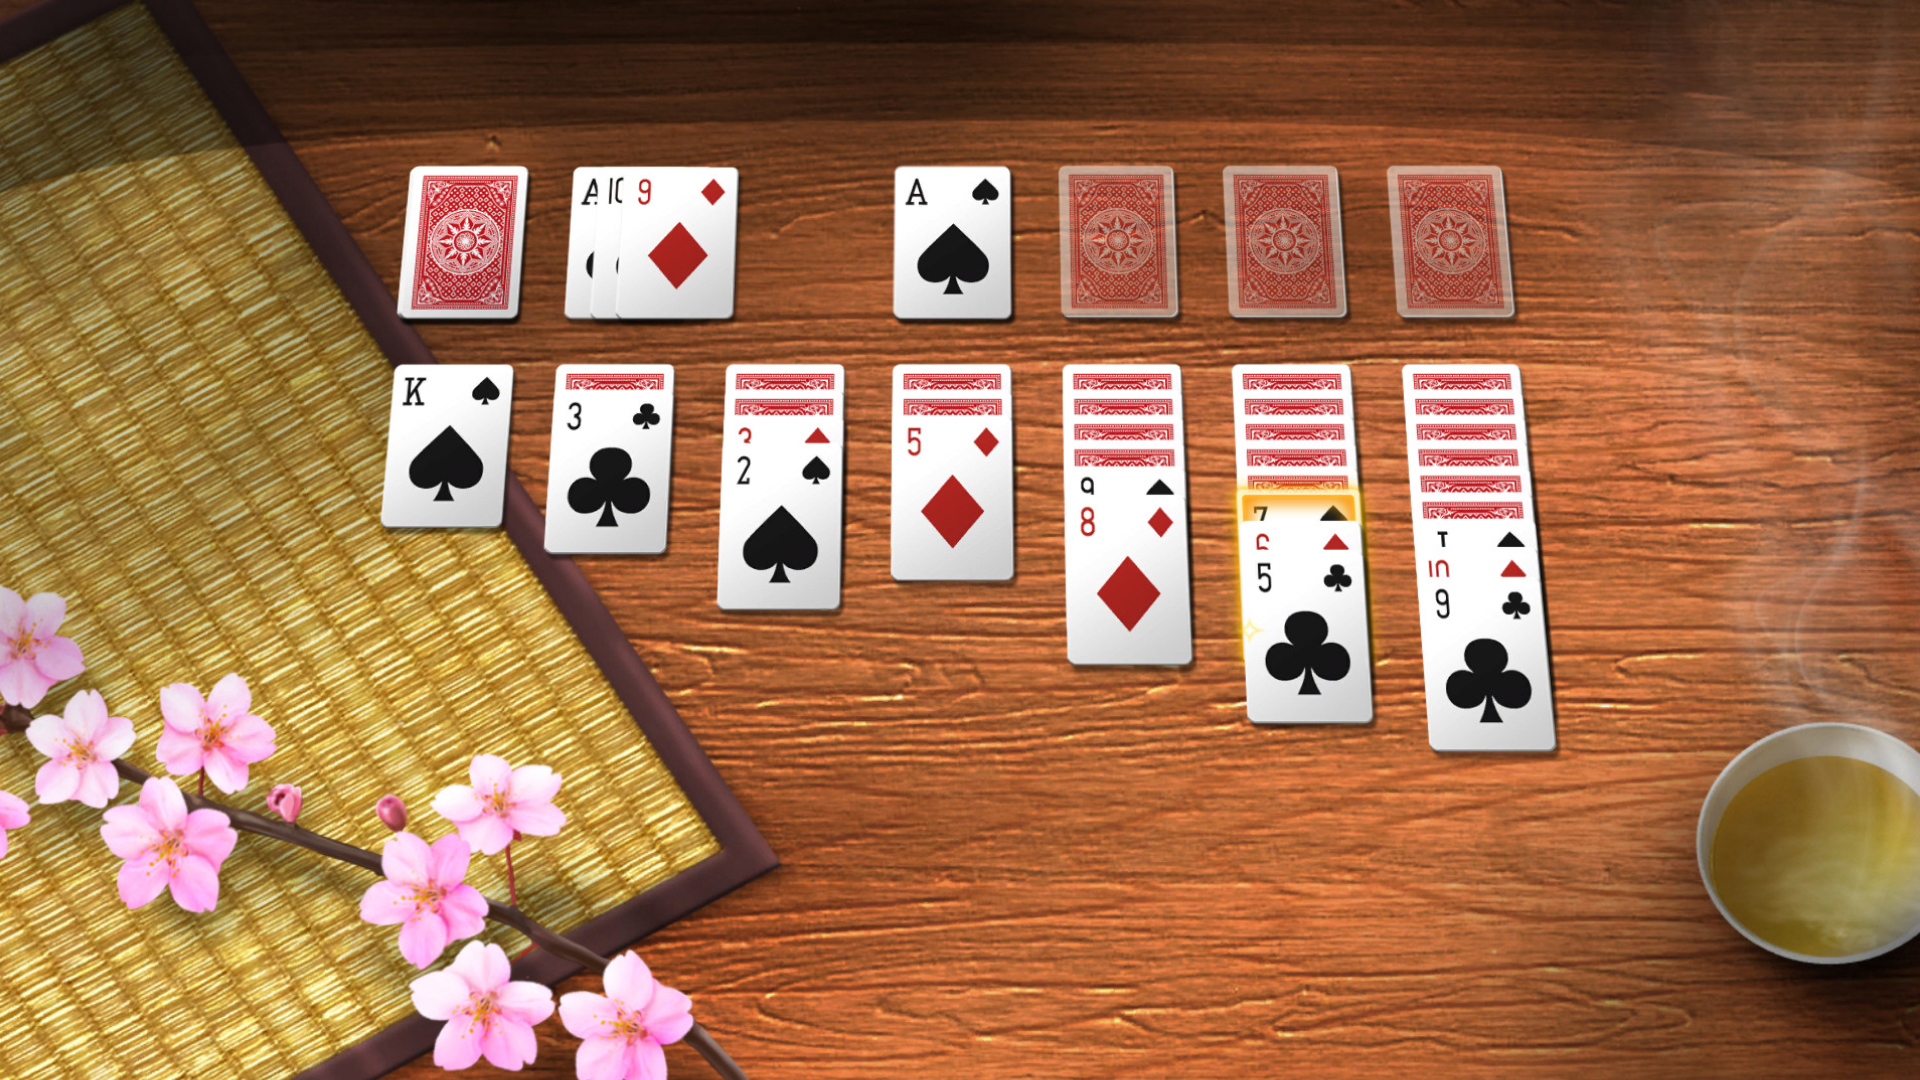 new Solitaire games for Android